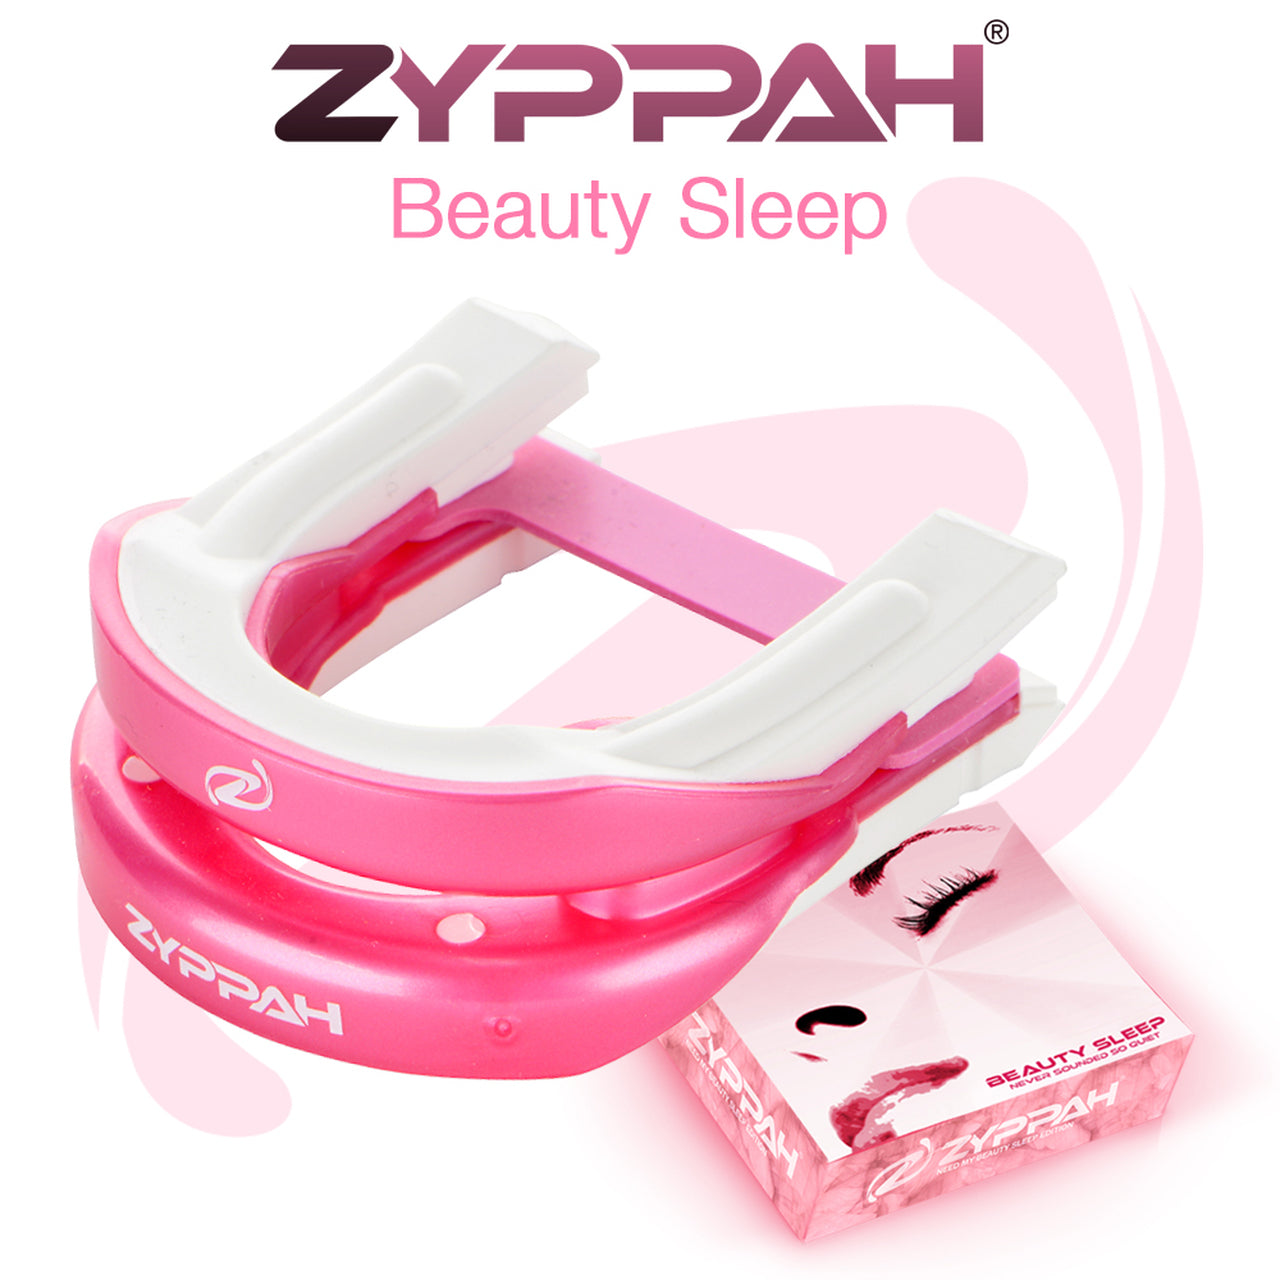 ZYPPAH Beauty Sleep